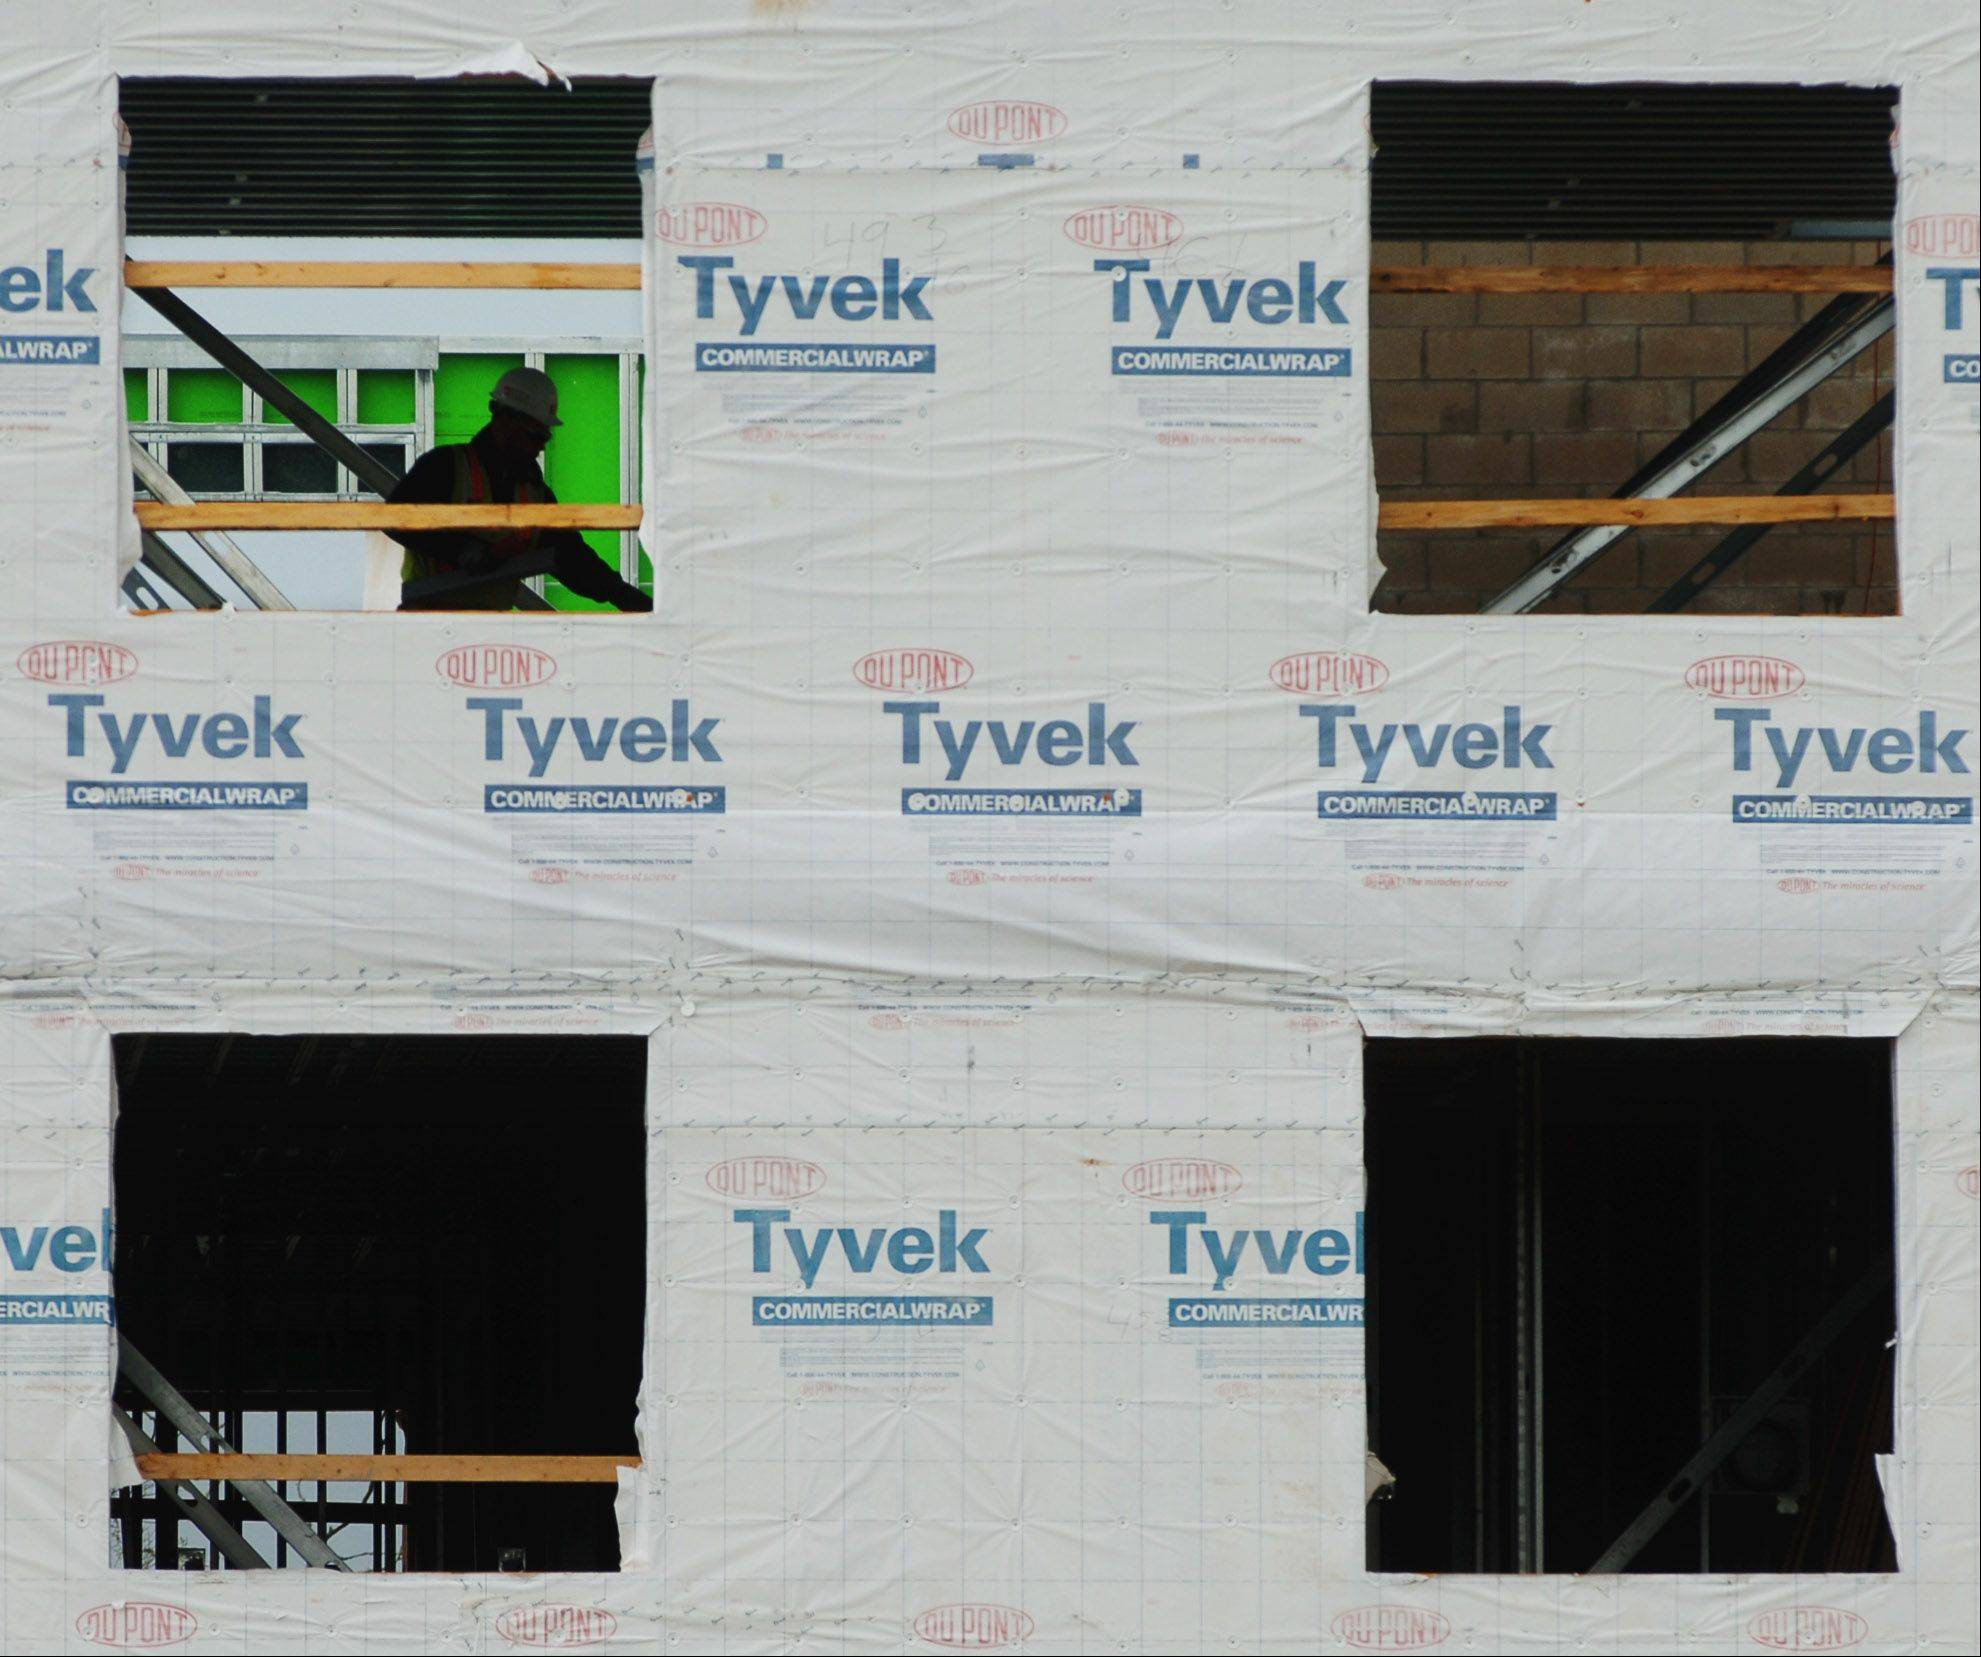 A new low-income apartment complex for tenants 55 and older called Lakefront Lodge is taking shape on the west side of Grayslake. Construction continues Thursday on the 70-unit complex being built just south of the village's namesake, Gray's Lake.